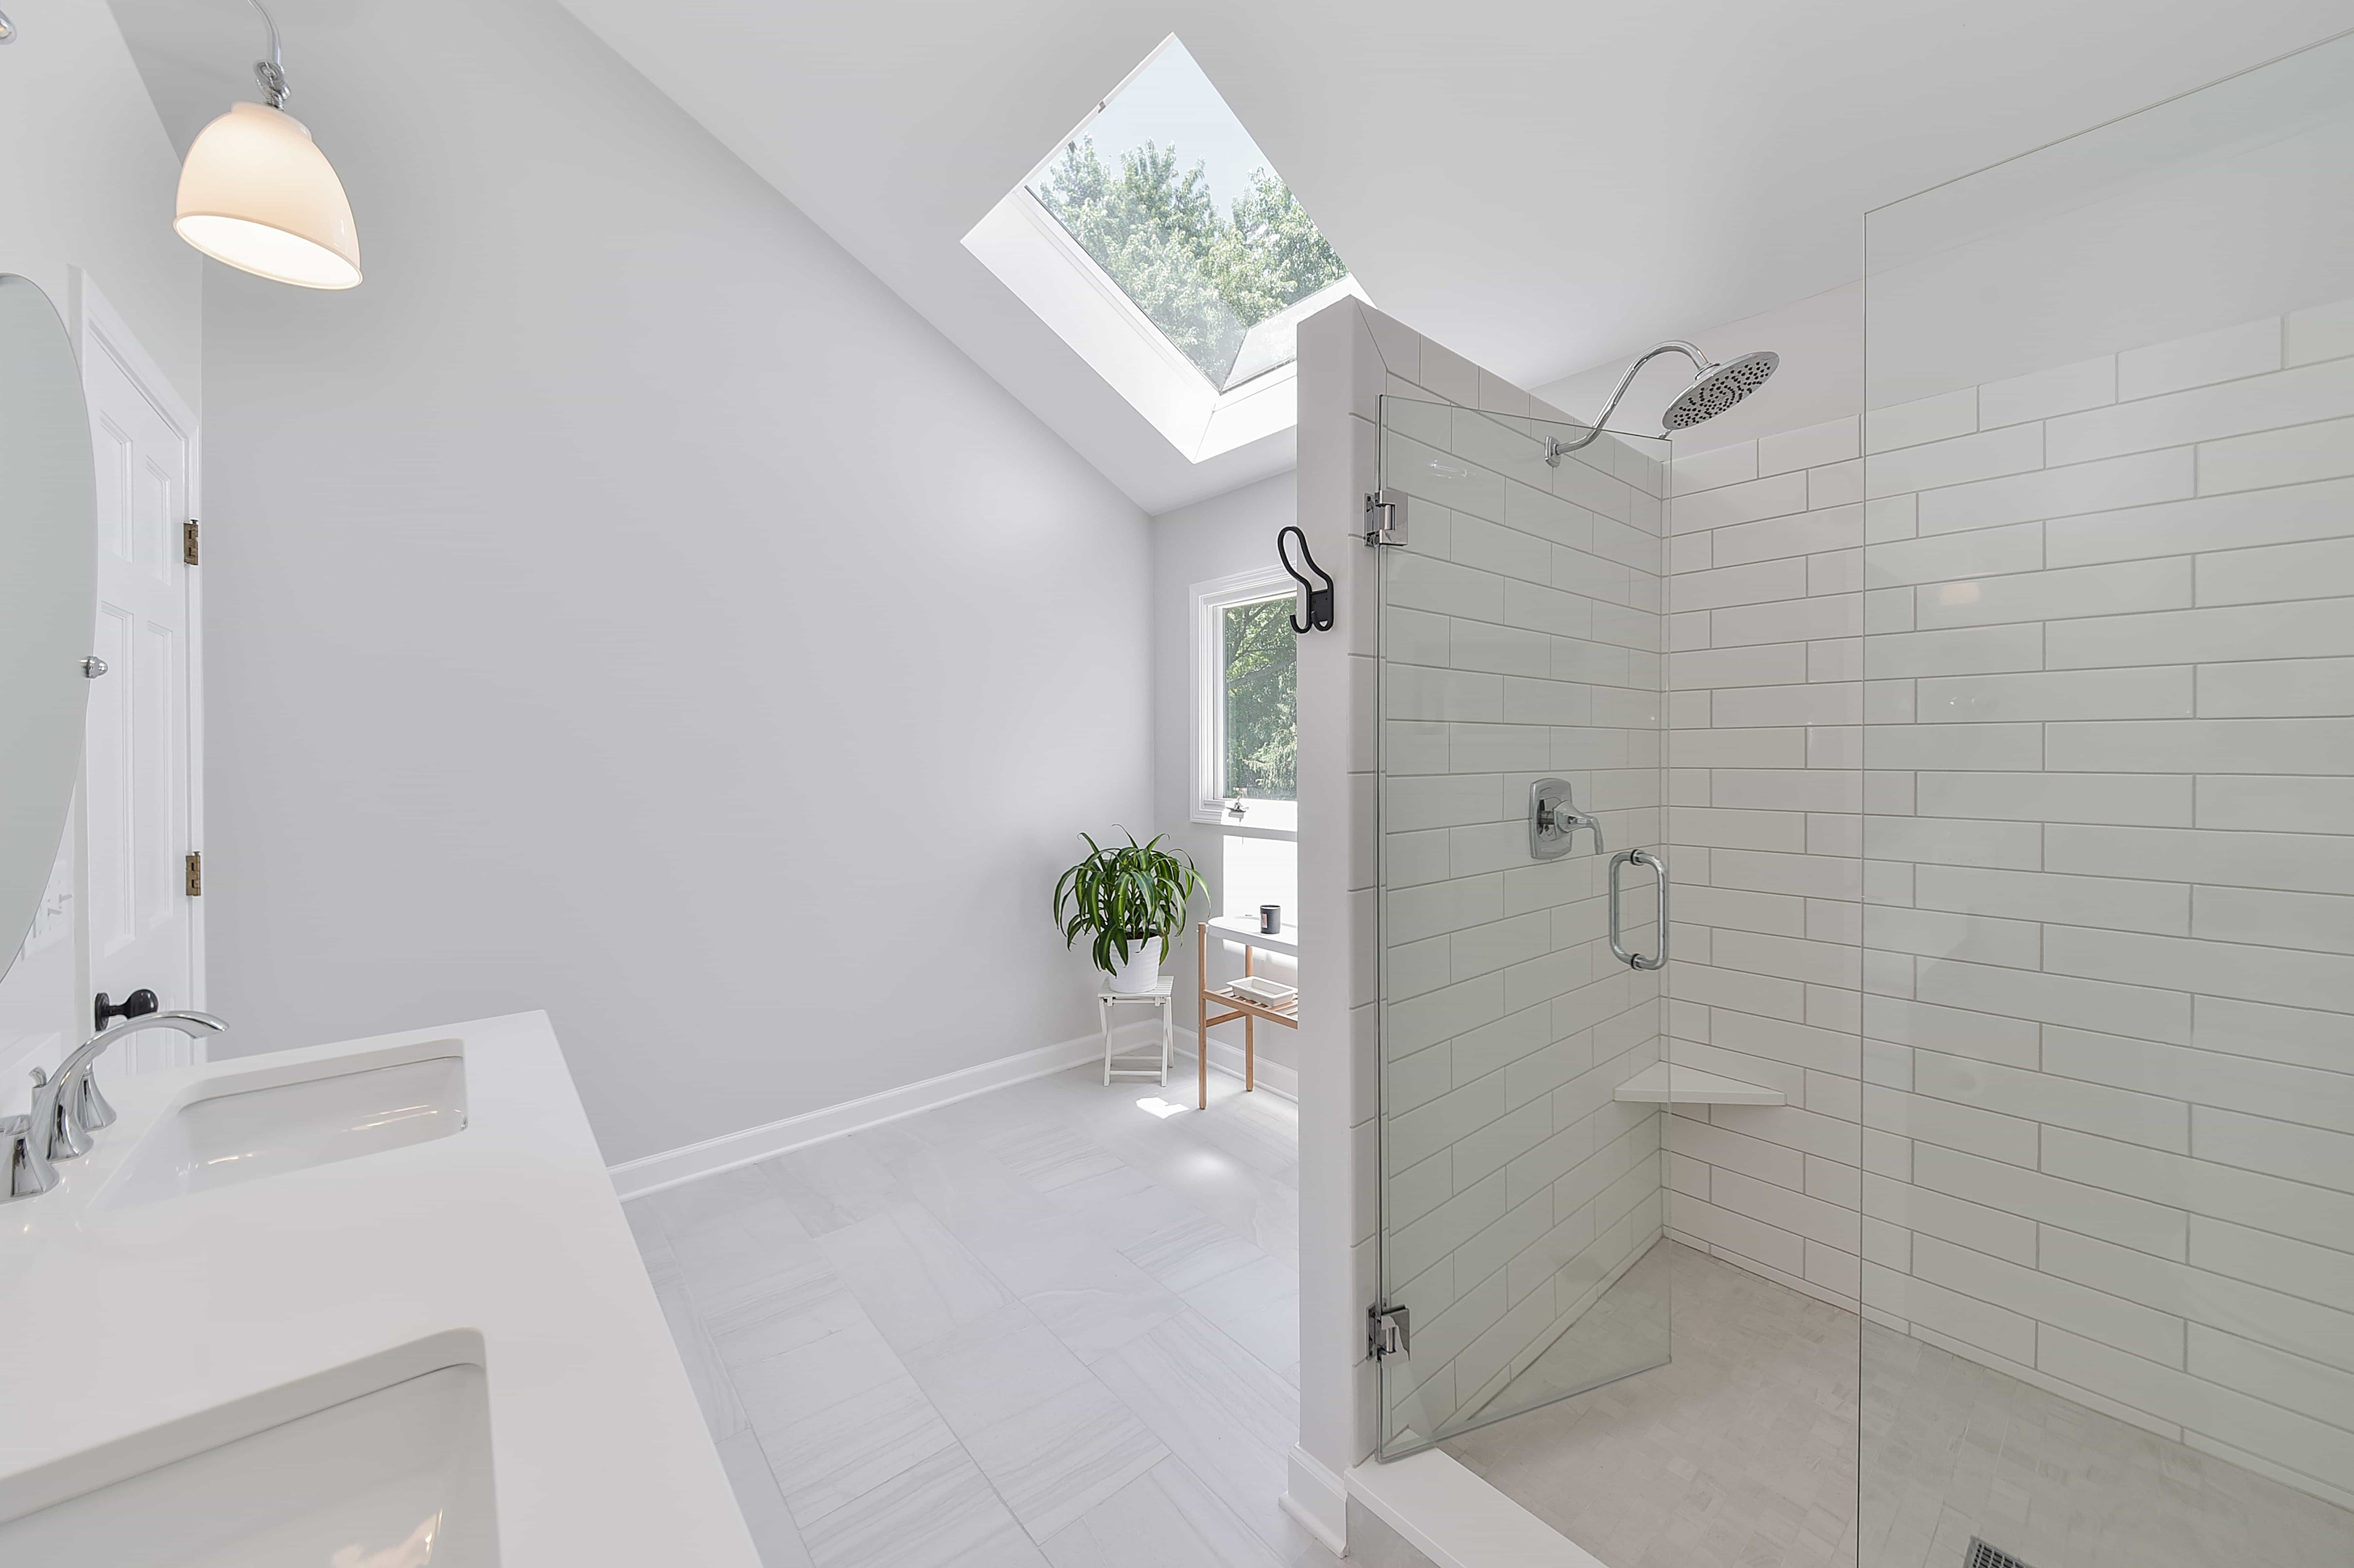 Monochromatic Contemporary Bathroom And Shower Combo With Glass Door Walk In Subway Tile Shower And Skylight (Photo 1 of 16)